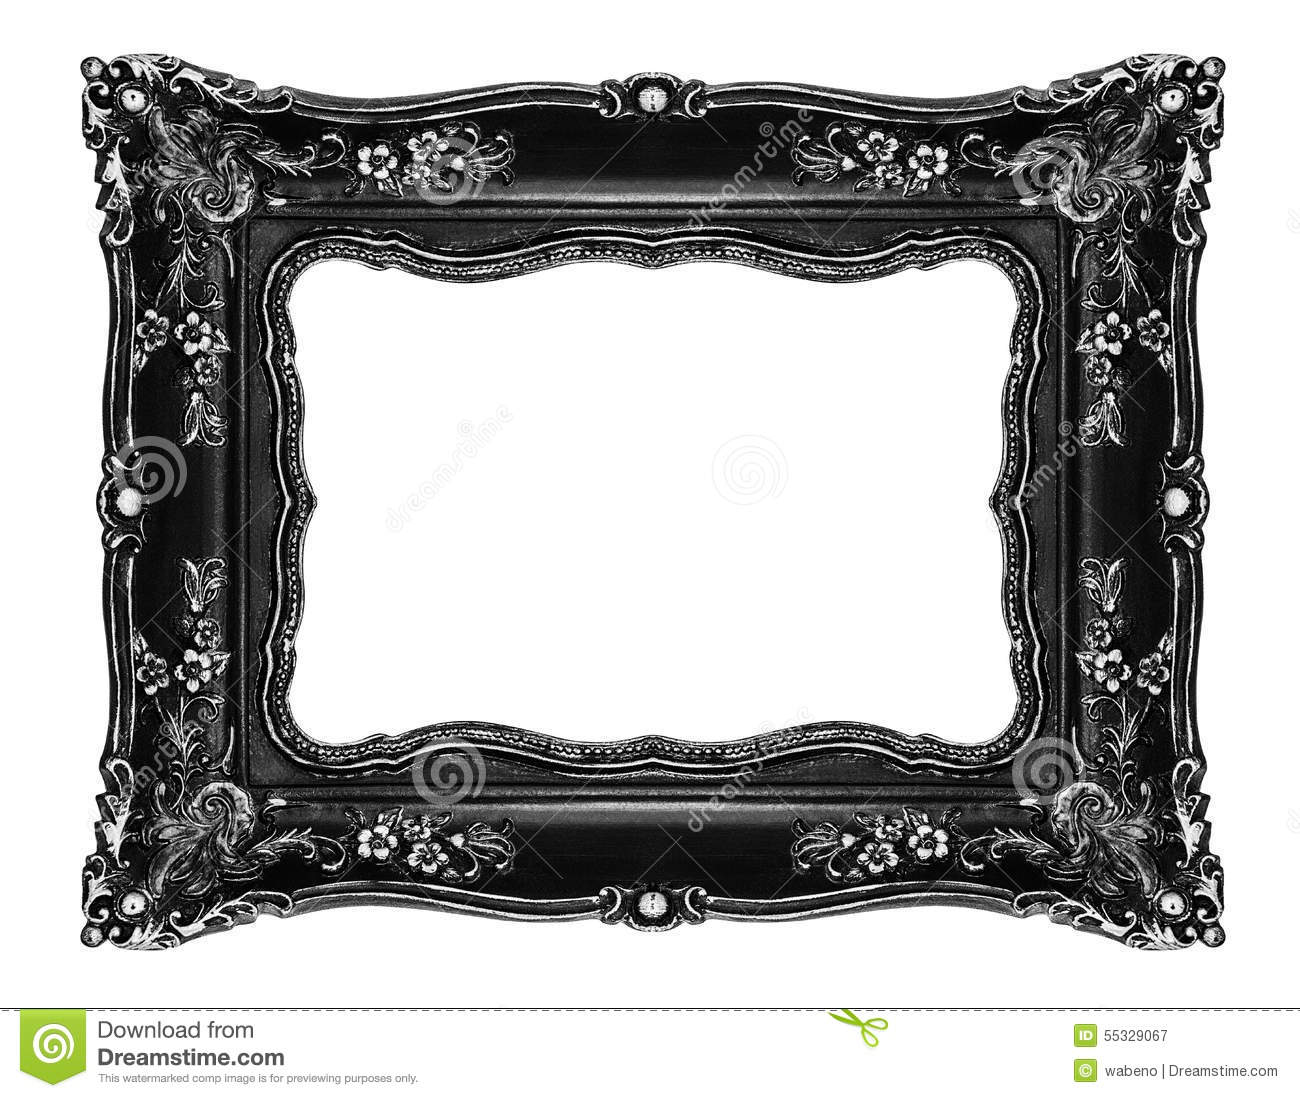 Black Ornate Frame On White Stock Photo Image 55329067